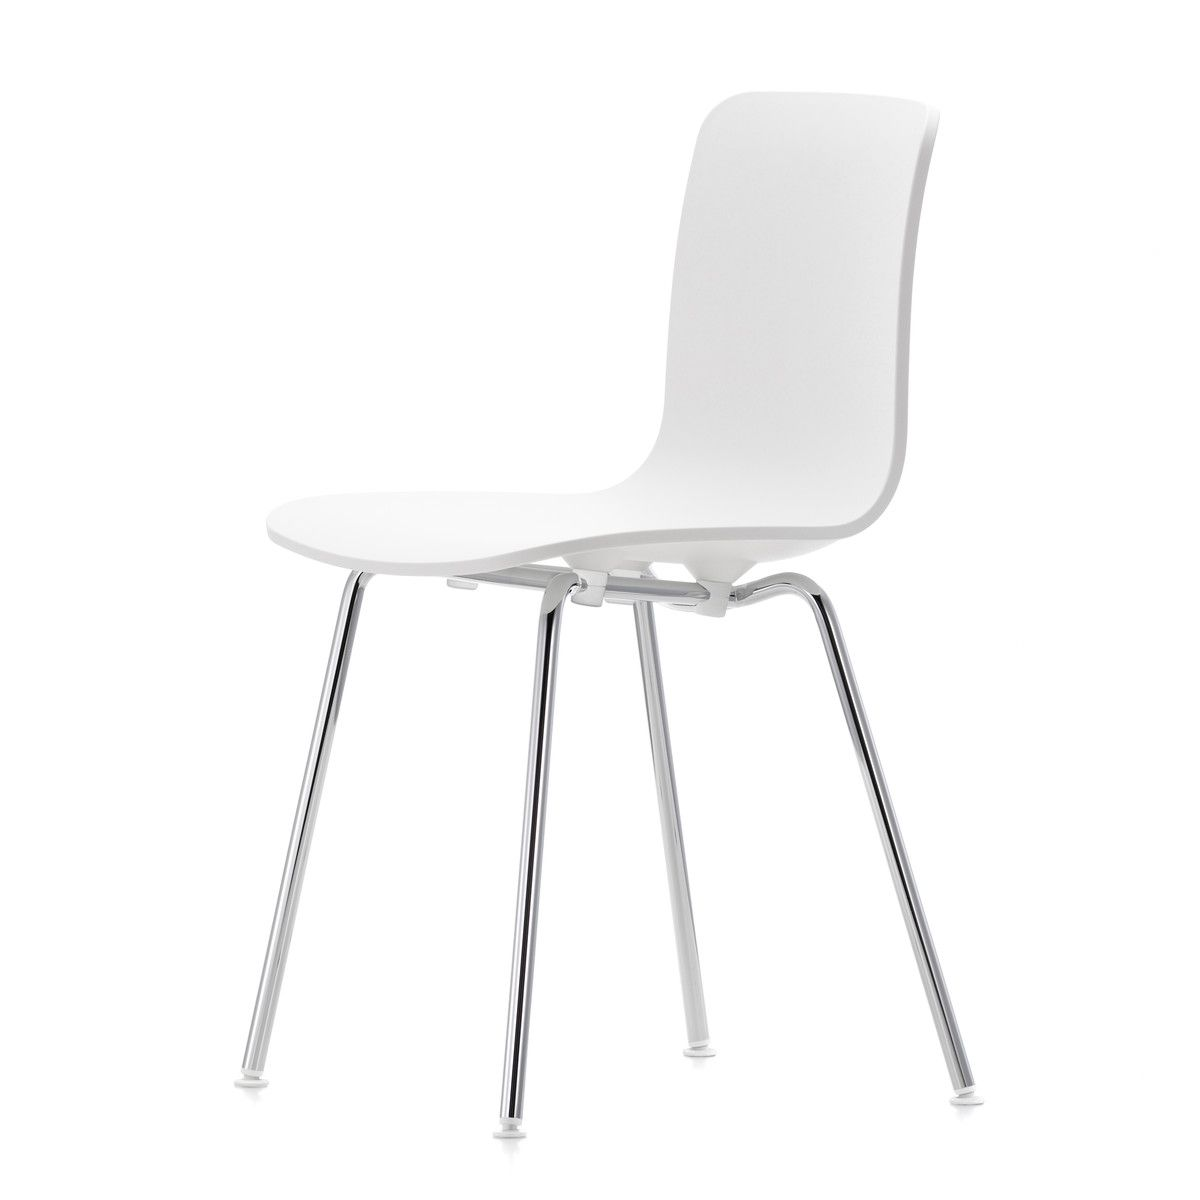 Vitra Hal Wood Stoel Vitra Hal Tube Chair White Chrome Chair Stühle